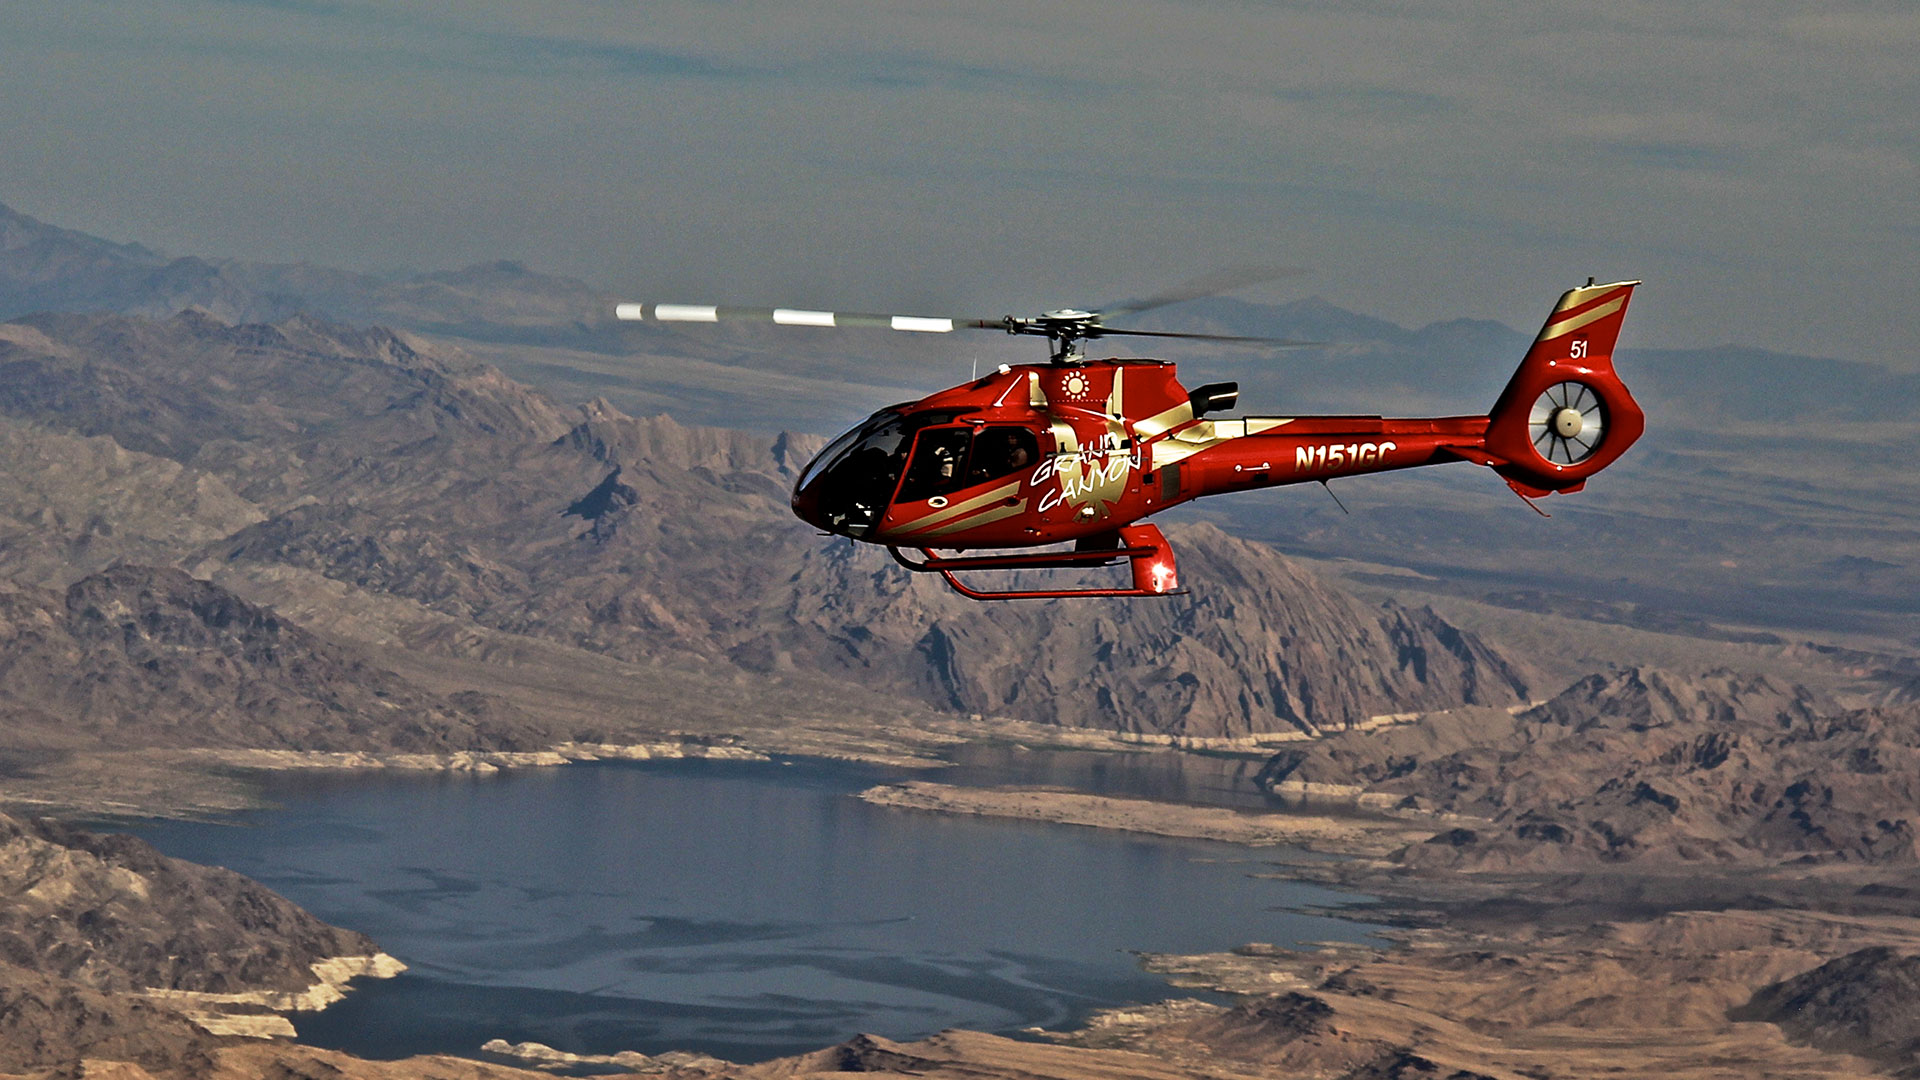 Grand Canyon Helicopter tour through Papillon tours.